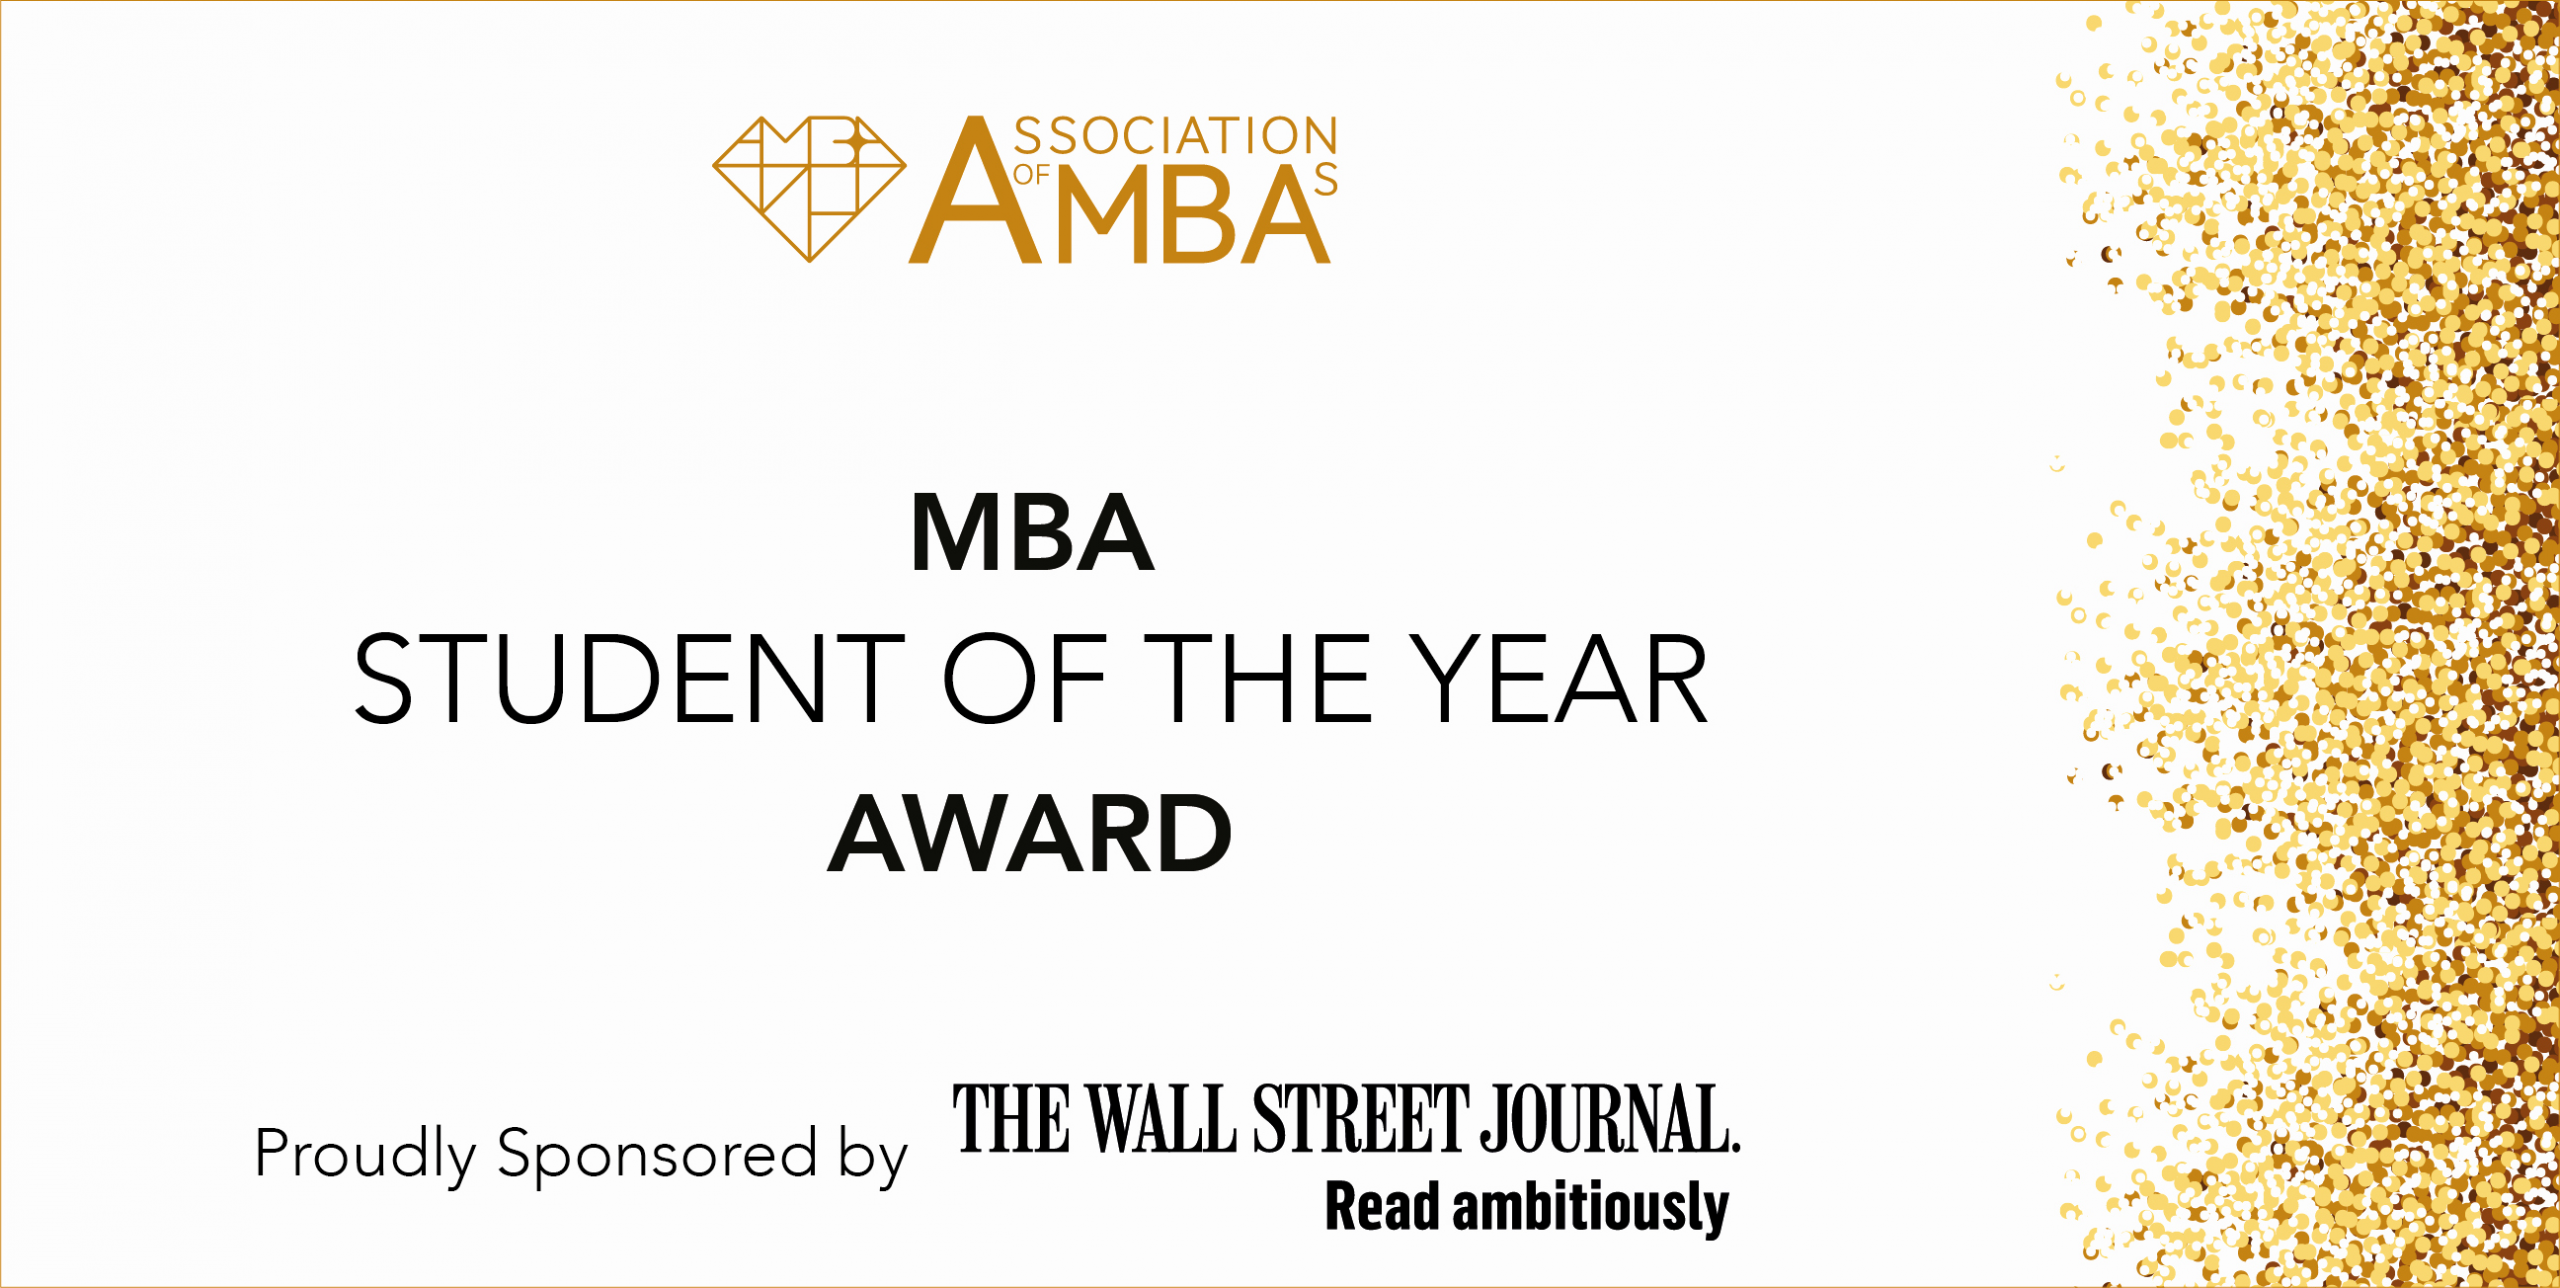 Student Of the Year Certificate Best Of Mba Student Of the Year Award association Of Mbas